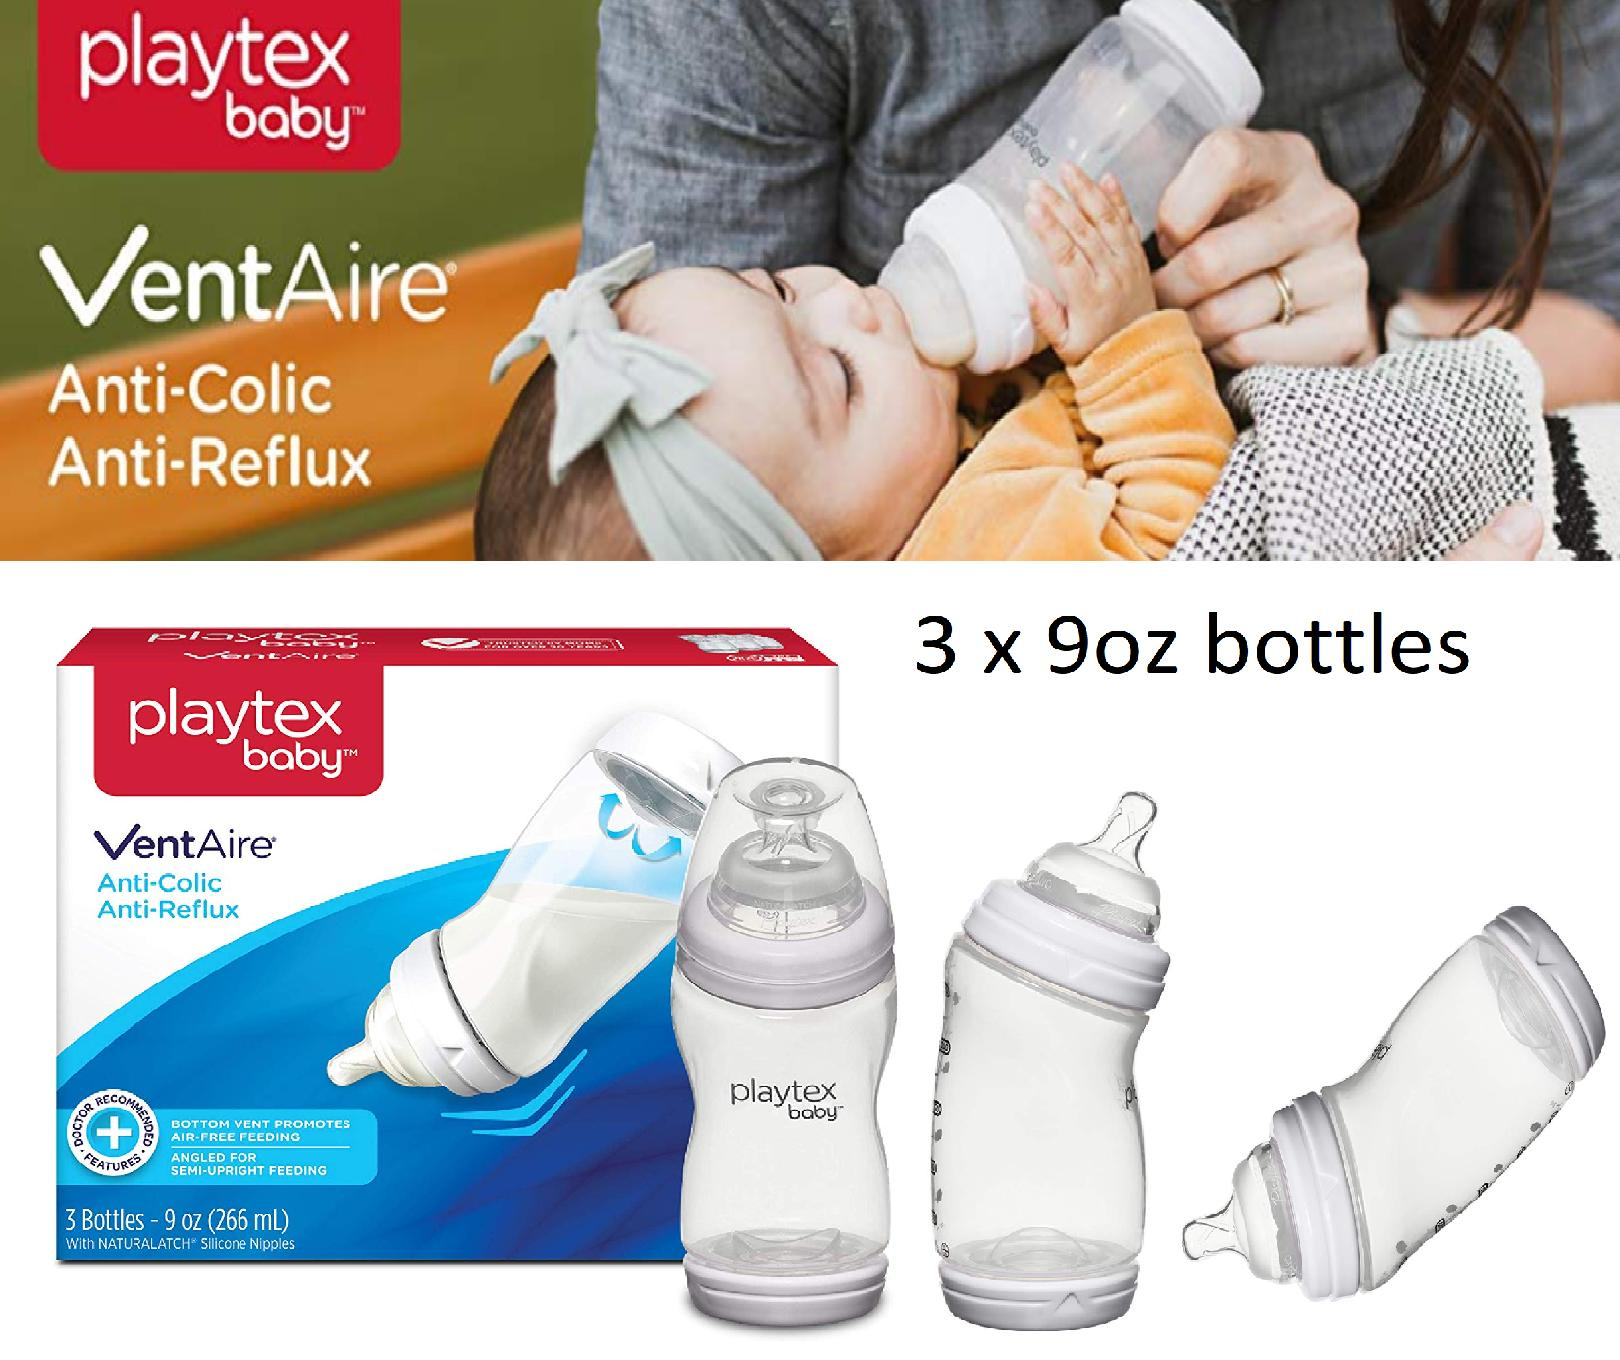 Playtex Baby Ventaire Anti Colic Baby Bottle, Bpa Free, 9 Ounce - 3 Count By Imaginarium.